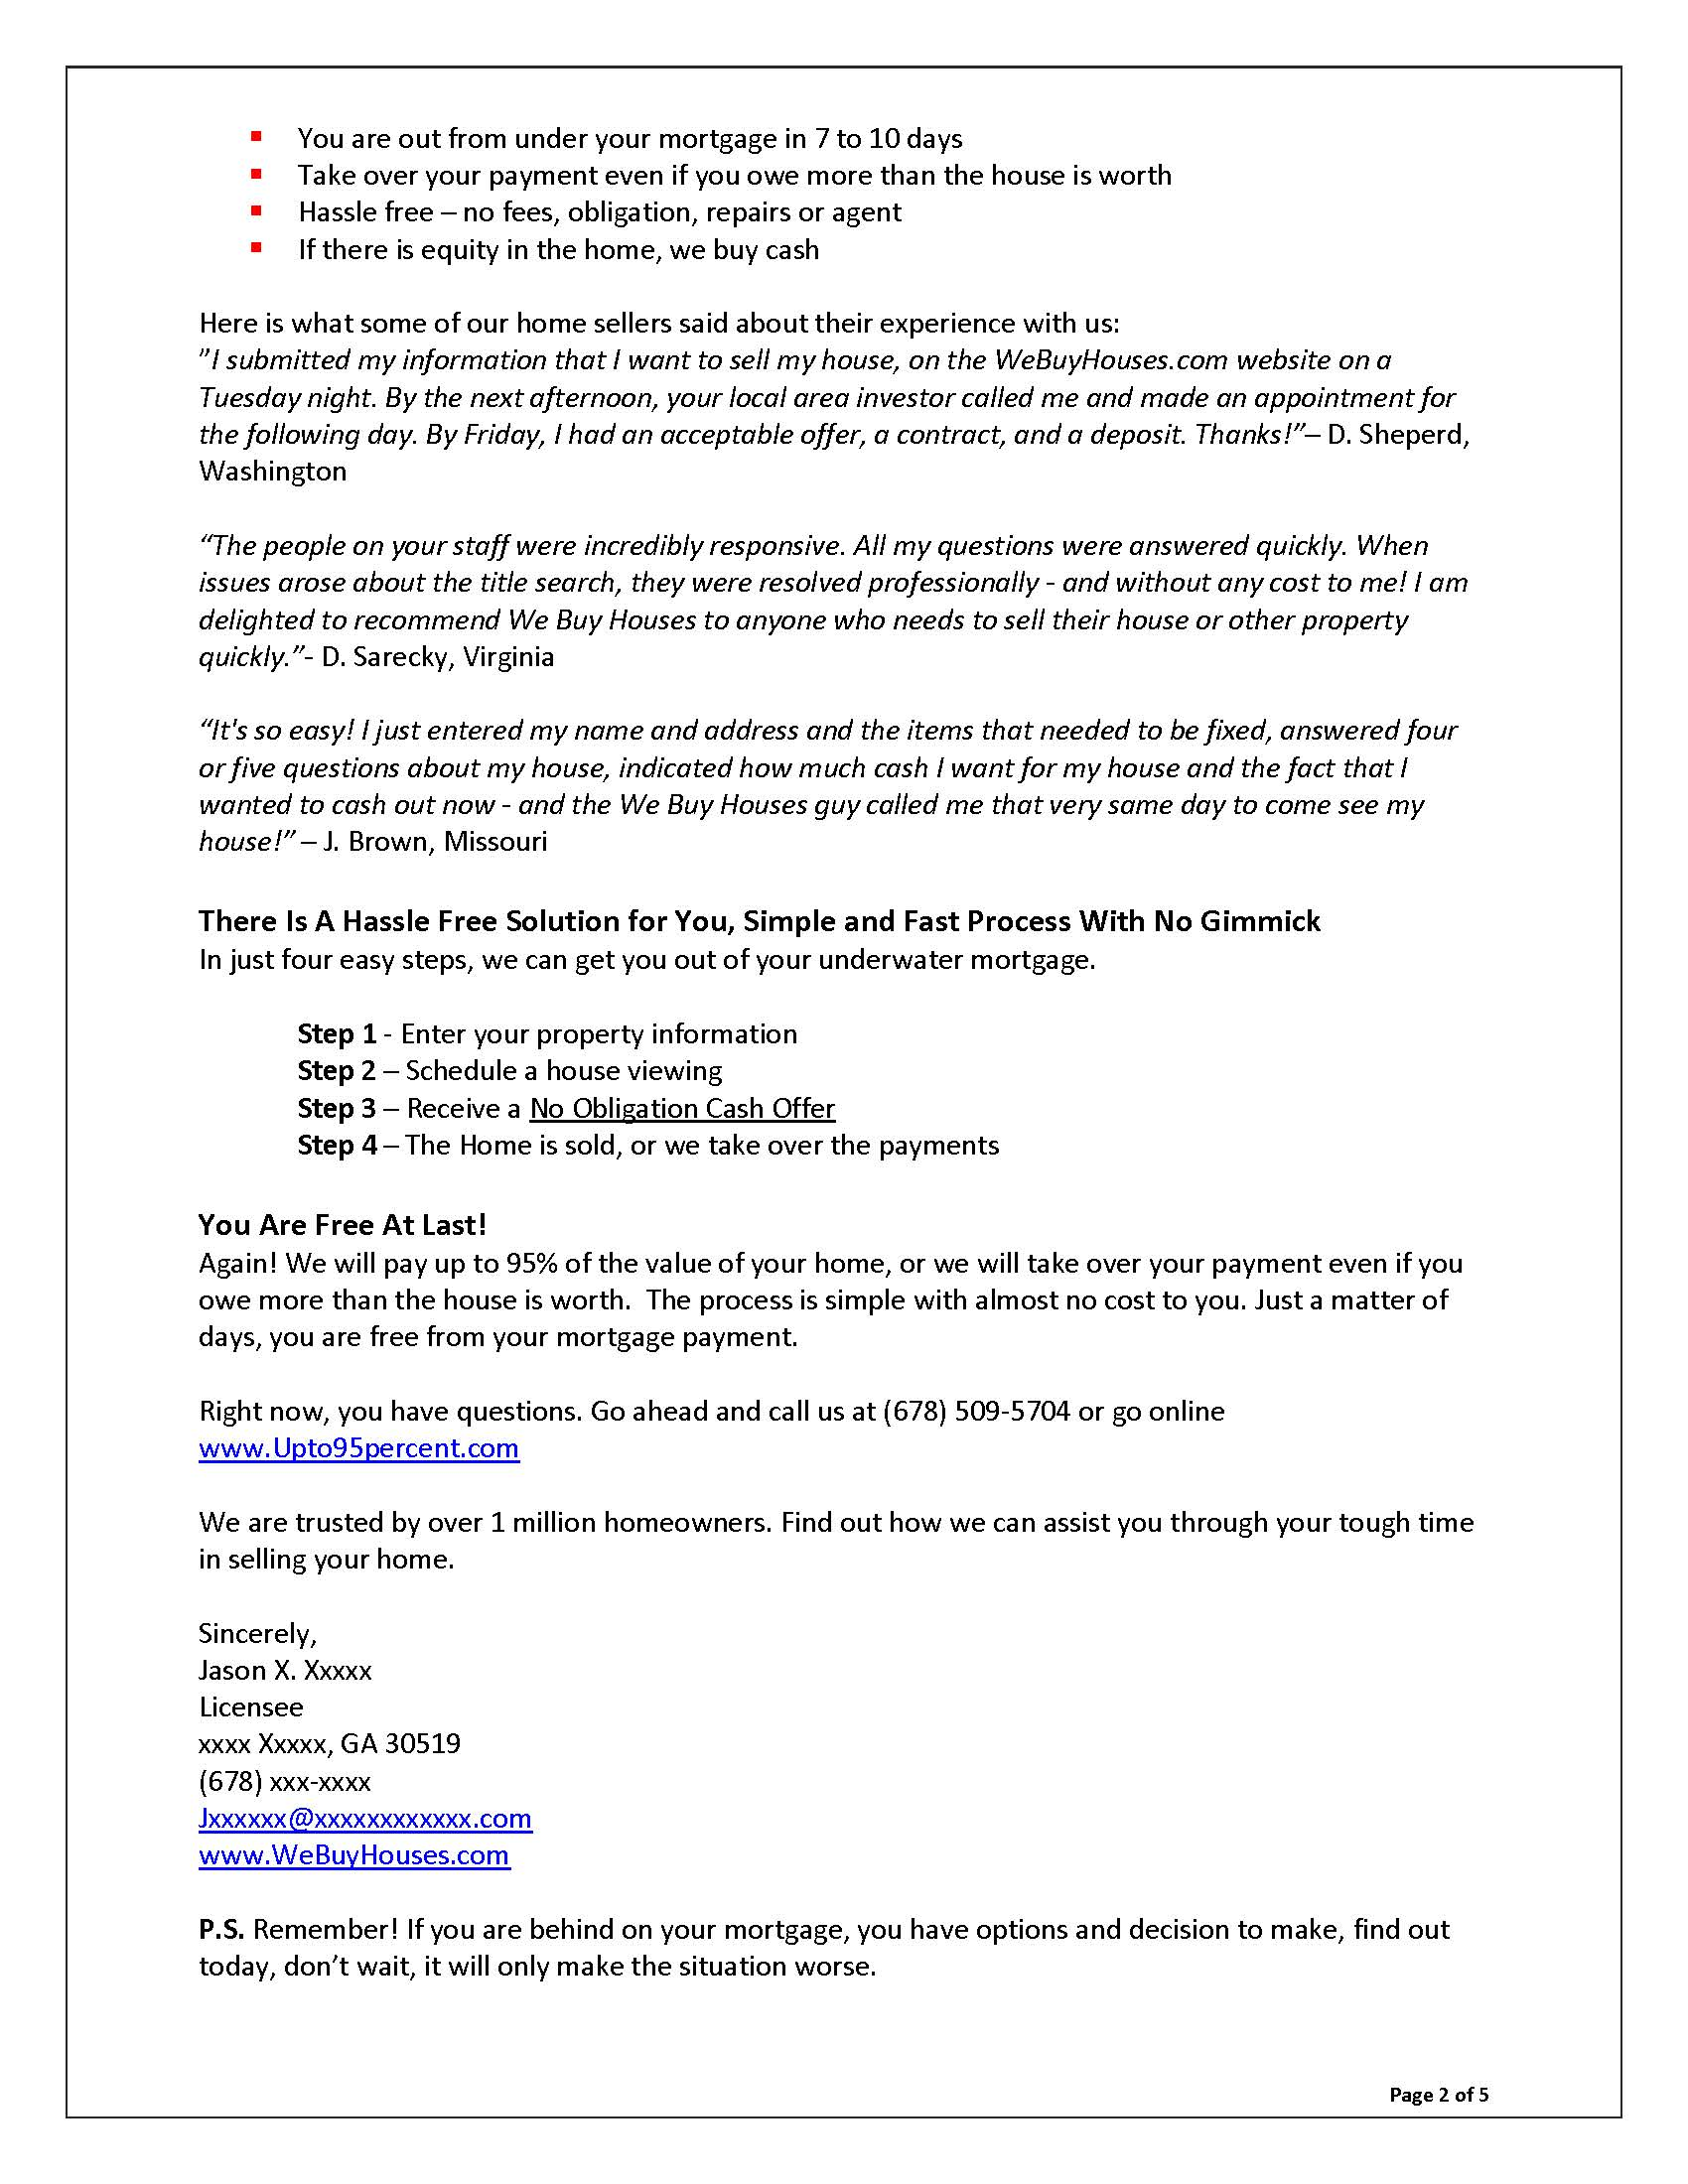 Sales Letter Series - Real Estate Co._Page_2